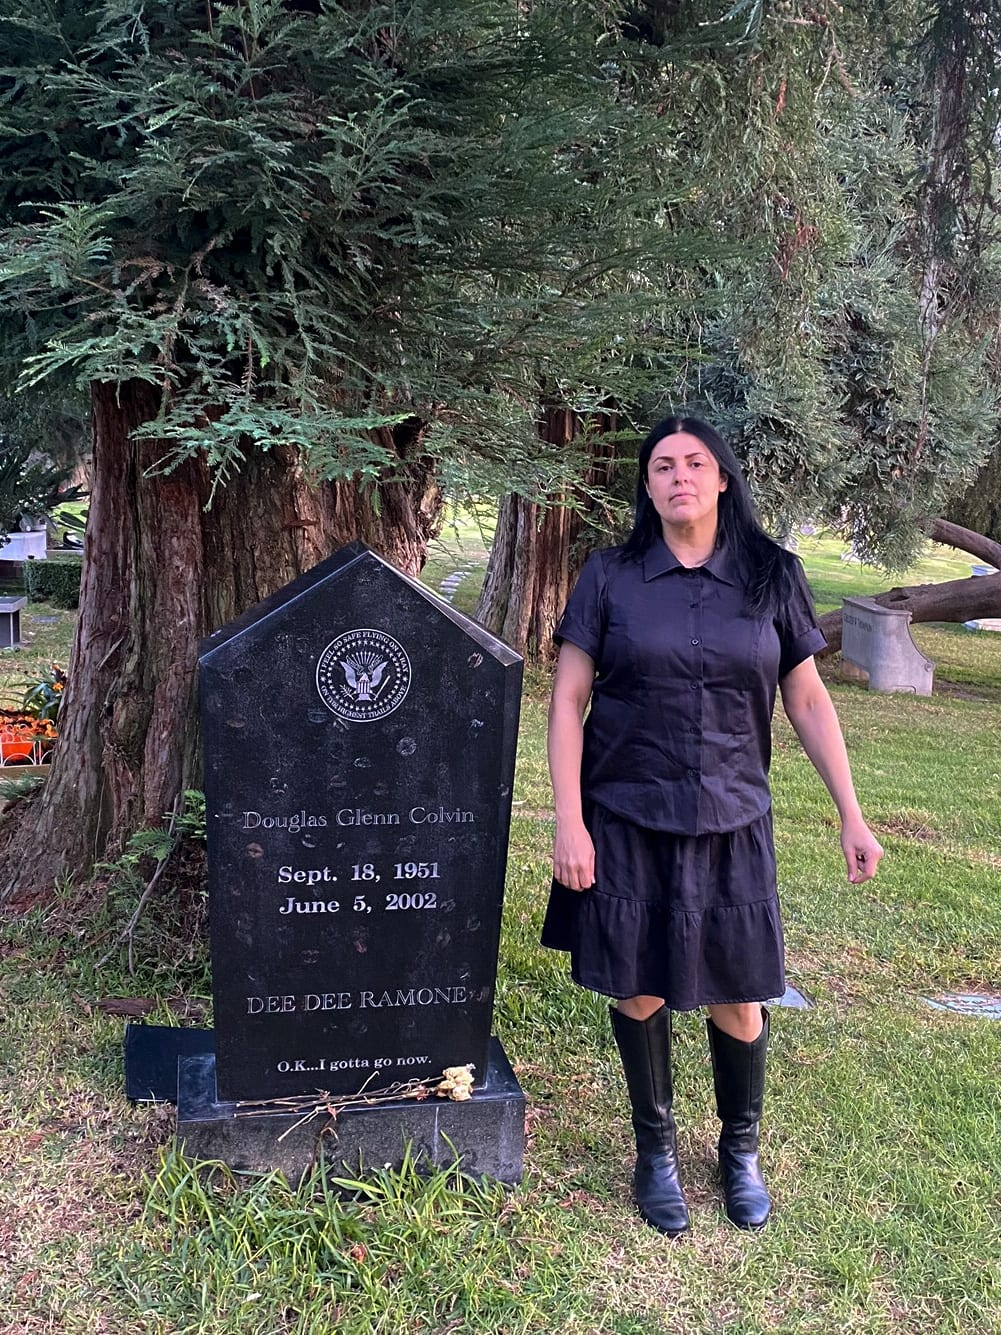 Image of a woman with long black hair standing next to a headstone wearing a buttoned up black shirt, a black skirt, and black boots